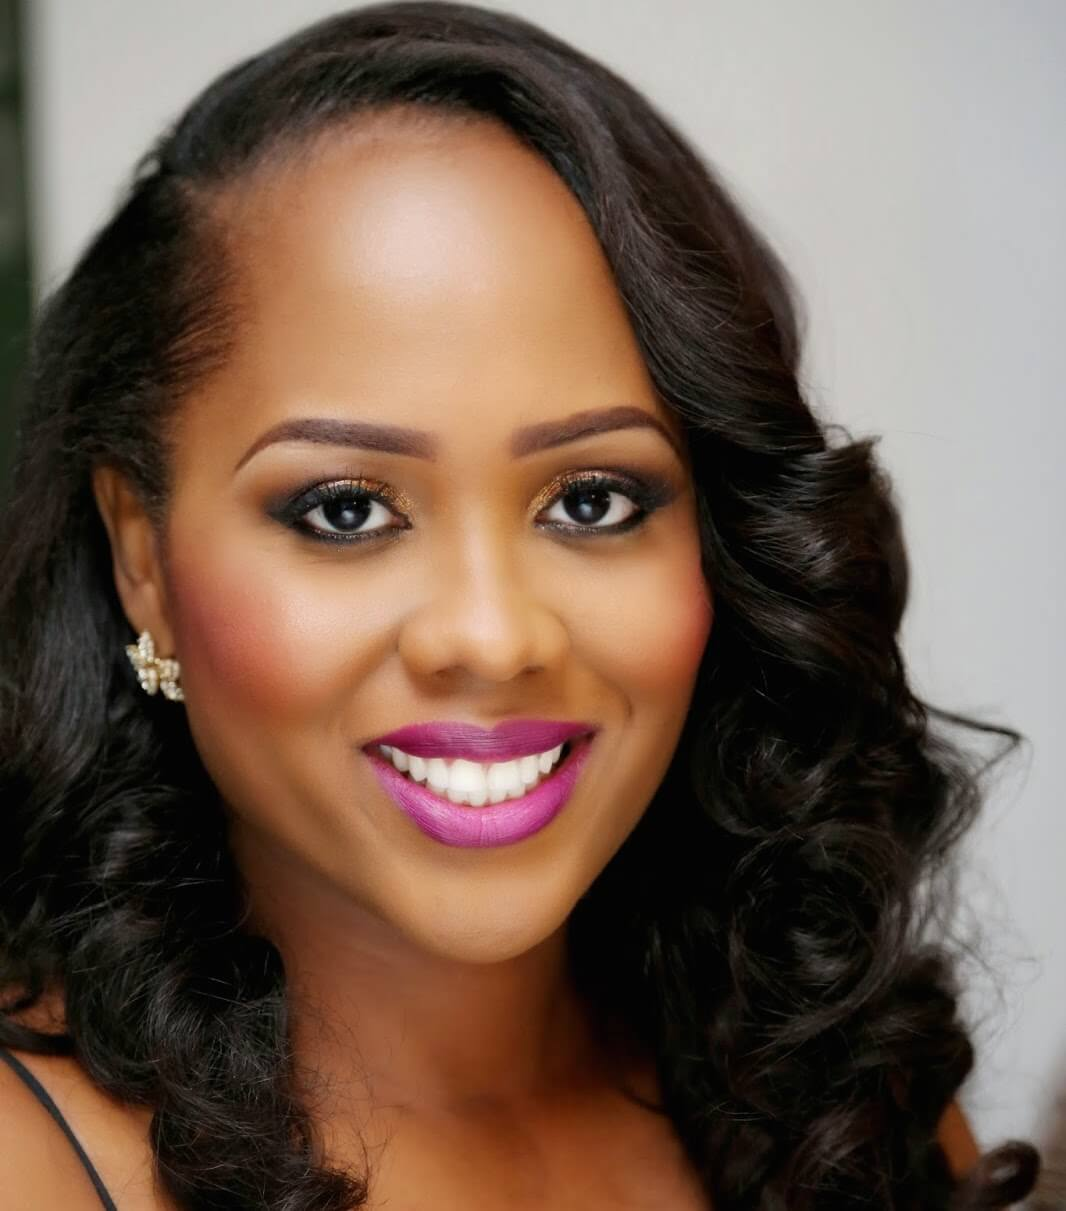 Uche Eze Pedro Biography - Age, Net Worth, Pictures & 9 Facts About Her